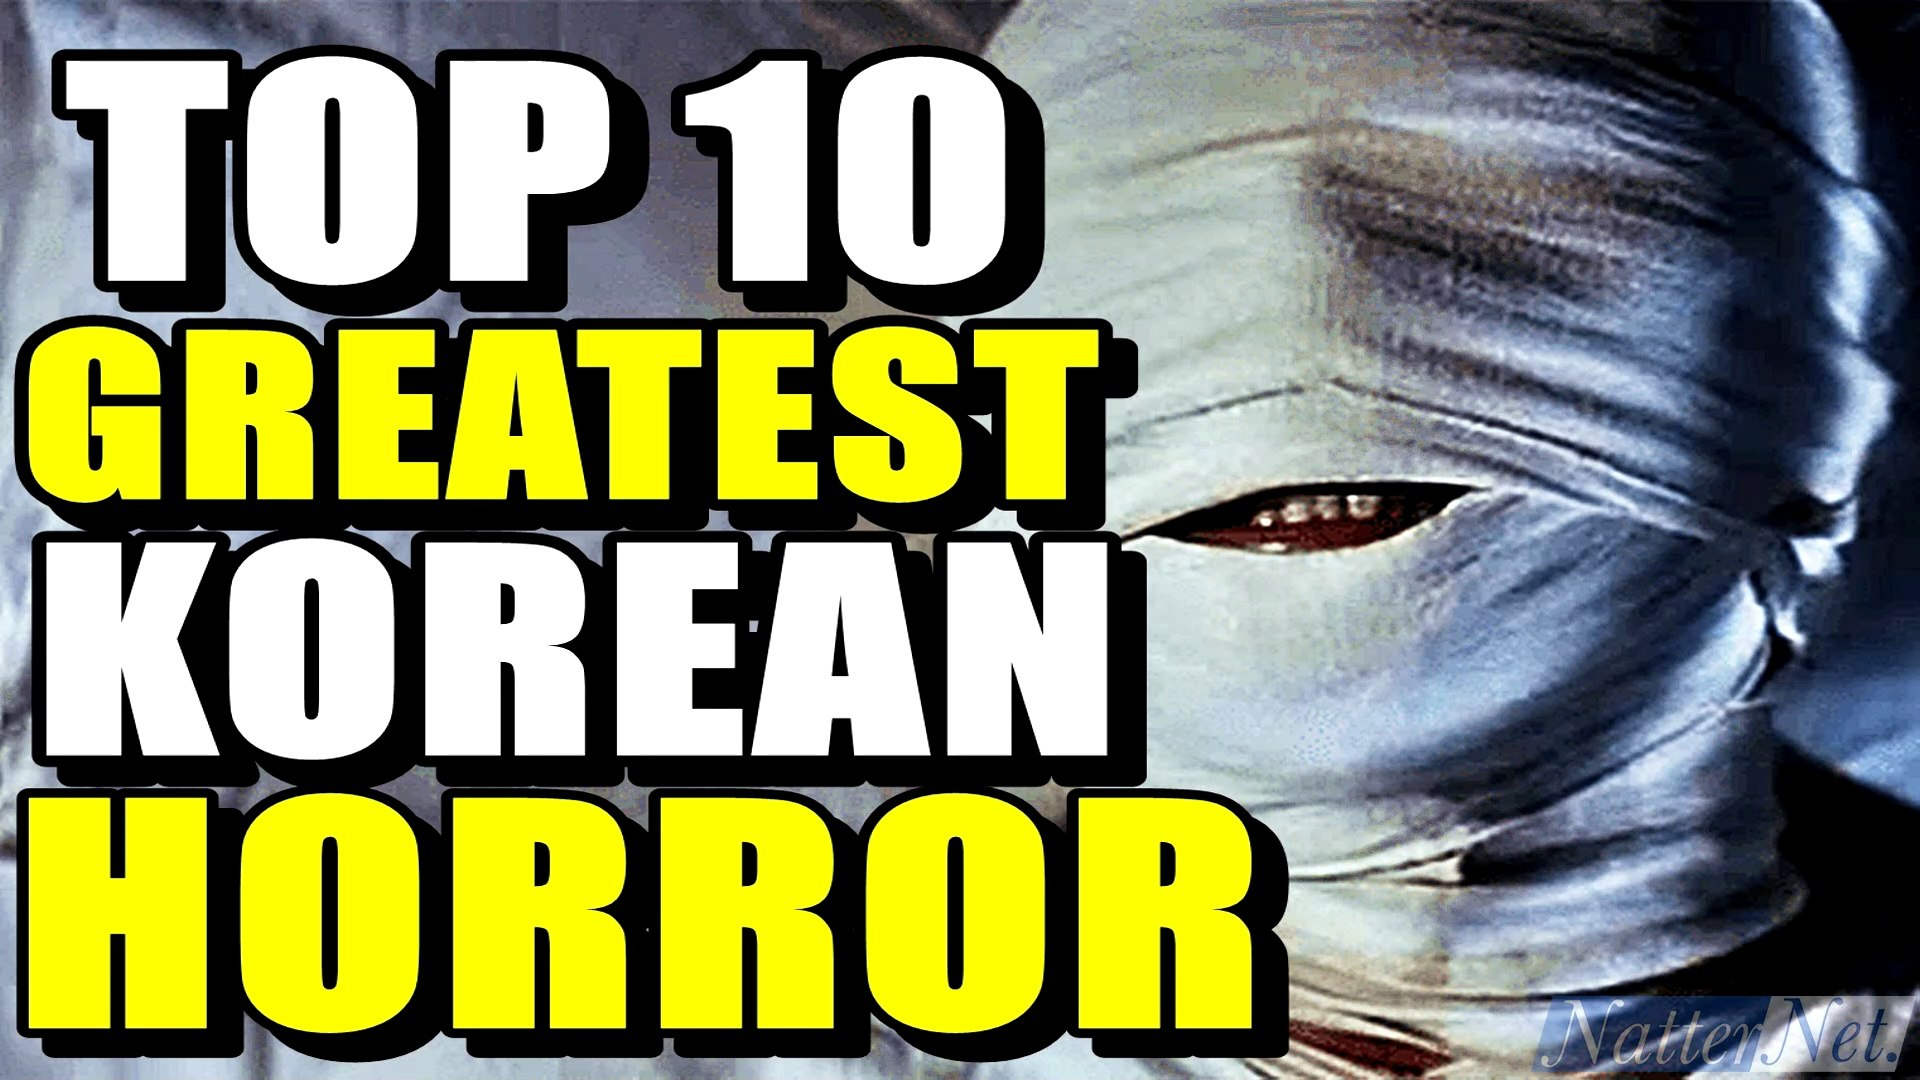 Top 10 Greatest Korean Horror Movies of All Time